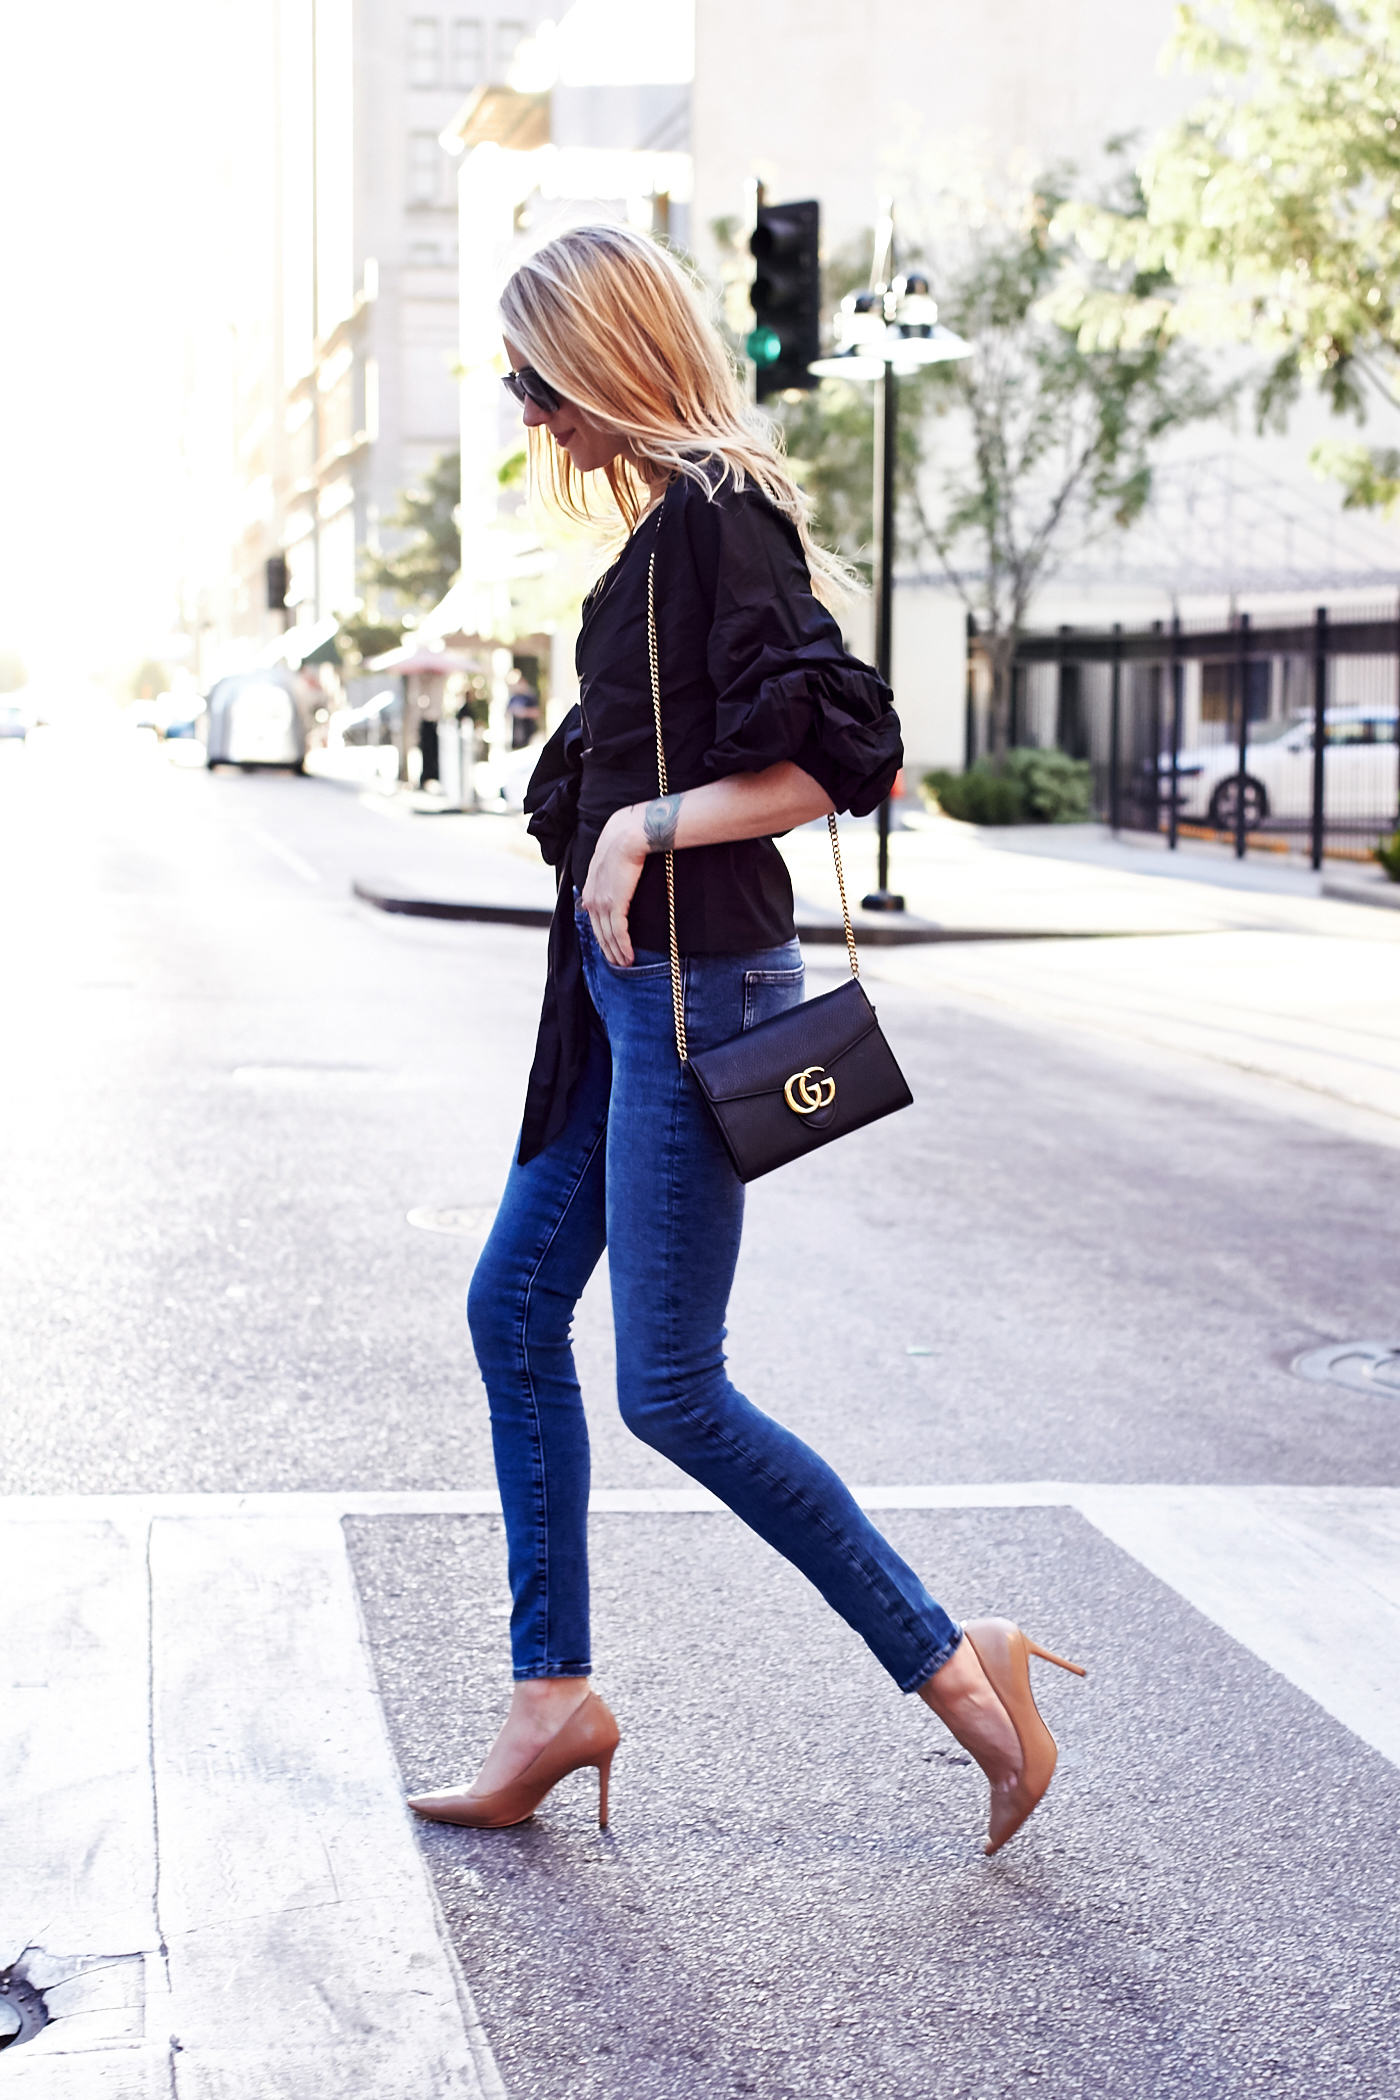 Chicwish Black Ruffle Sleeve Wrap Top, m.i.h denim skinny jeans, Sam Edelman nude pumps, Gucci Marmont handbag, Celine black sunglasses, fall outfit, date night outfit